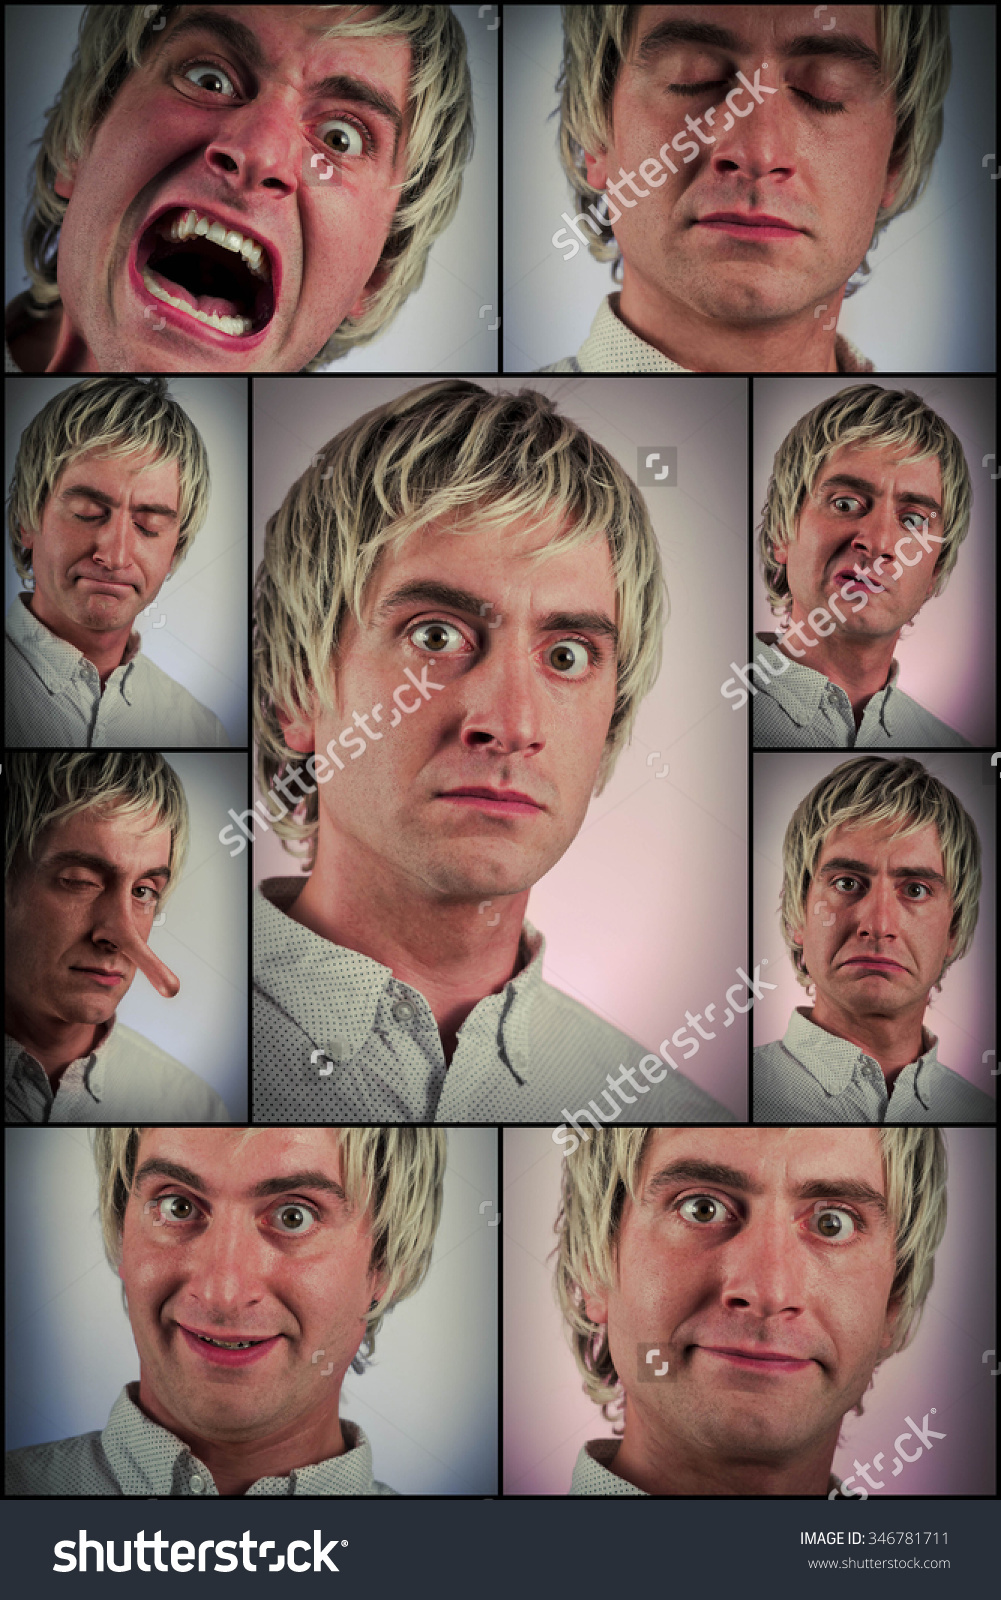 stock-photo-silly-man-making-various-facial-expressions-in-collage-imagery-346781711